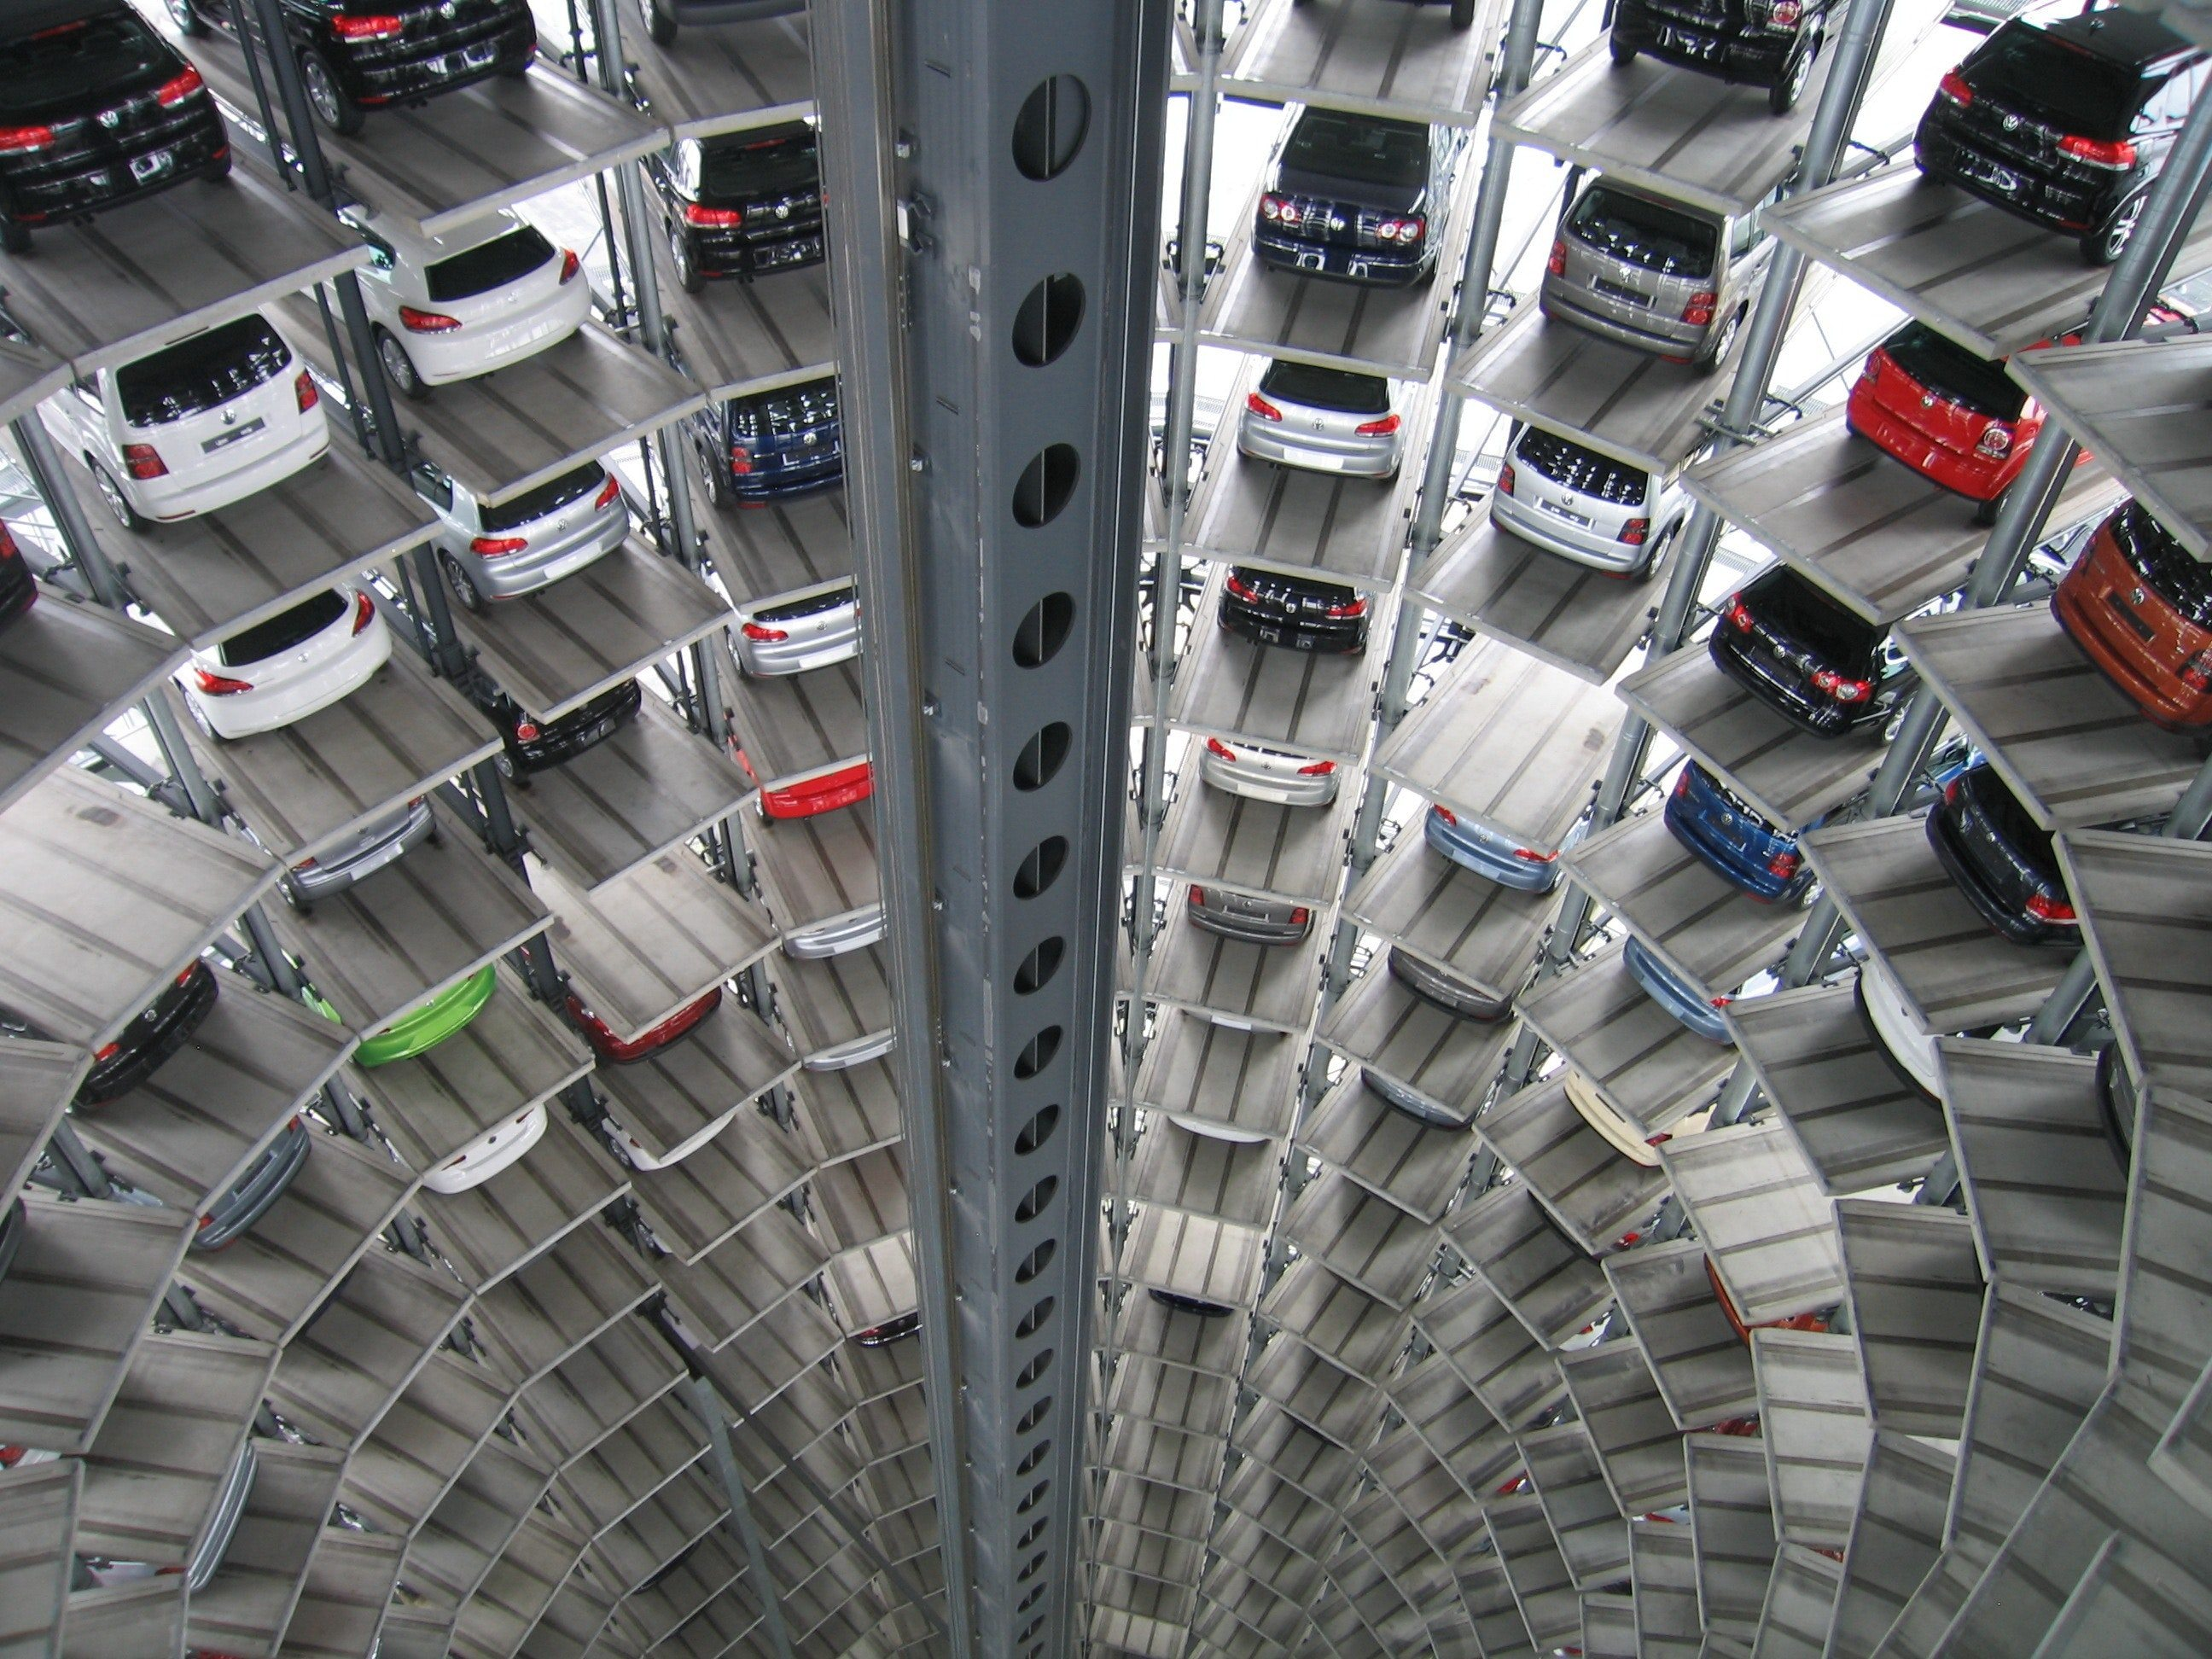 Positive outlook on global auto sales as US contraction narrower than previously expected: US auto sales are expected to fall by less than was previously expected, according to a report by Moody's March 14   the global auto market will grow by 1.5% in 2018